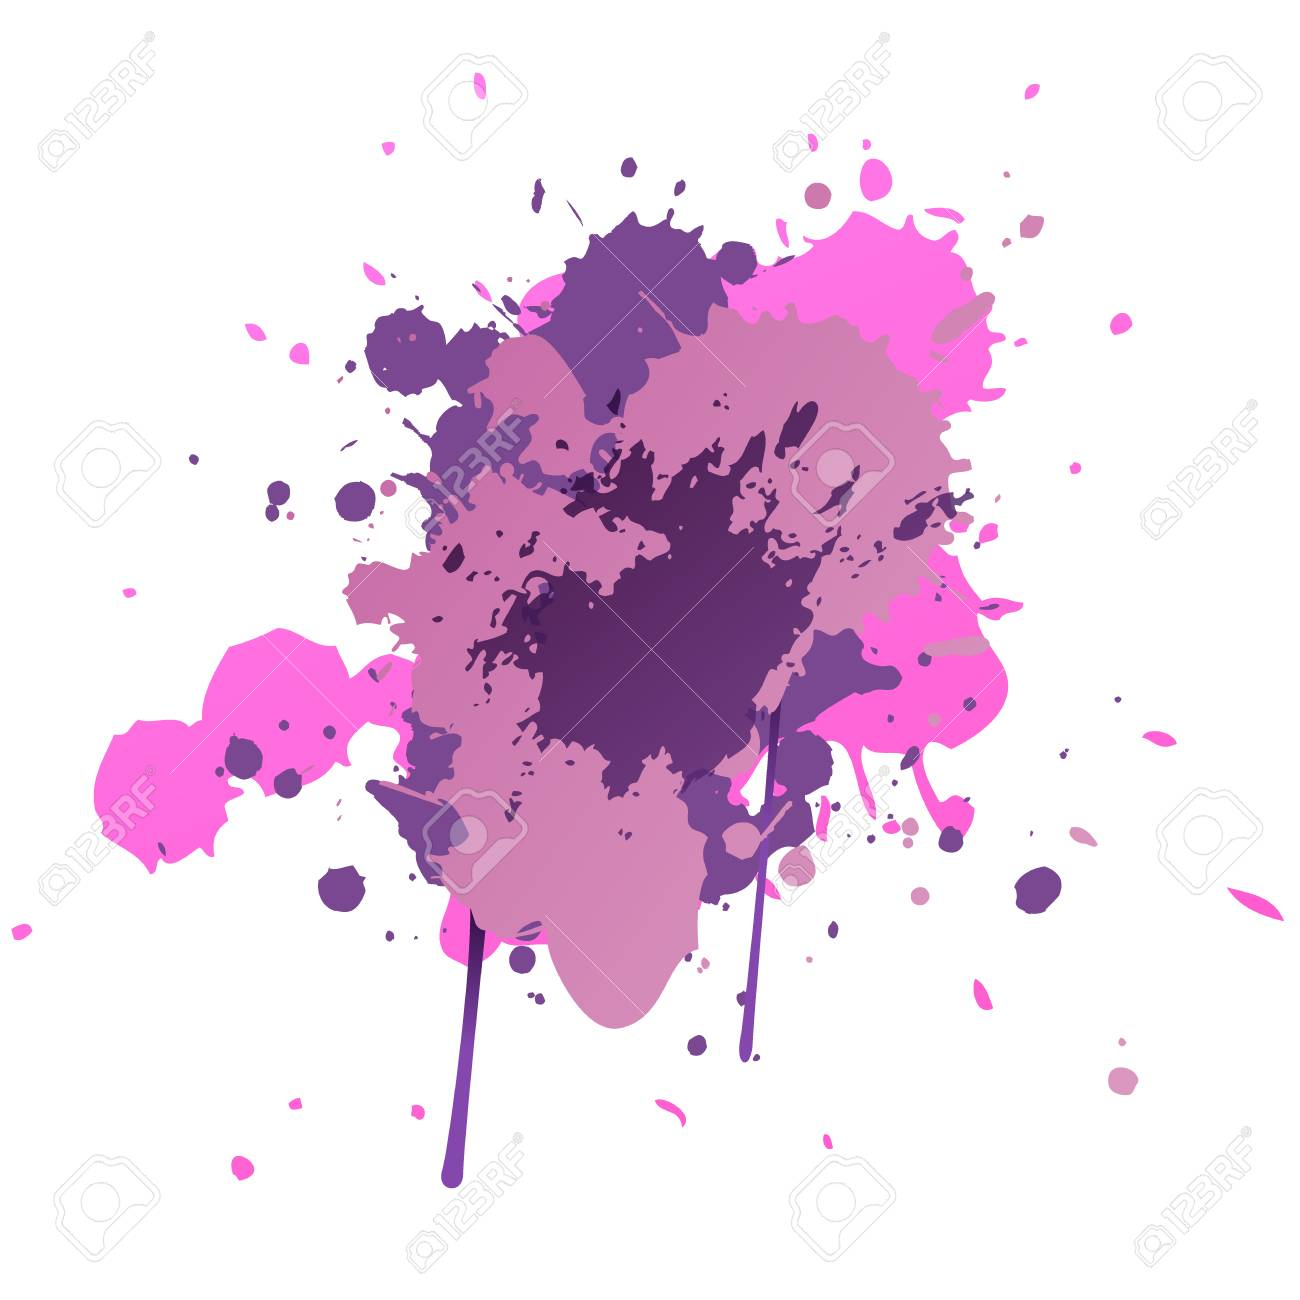 Paint Splatters Hand Drawn Splashes Colorful Ink Spots Acrylic